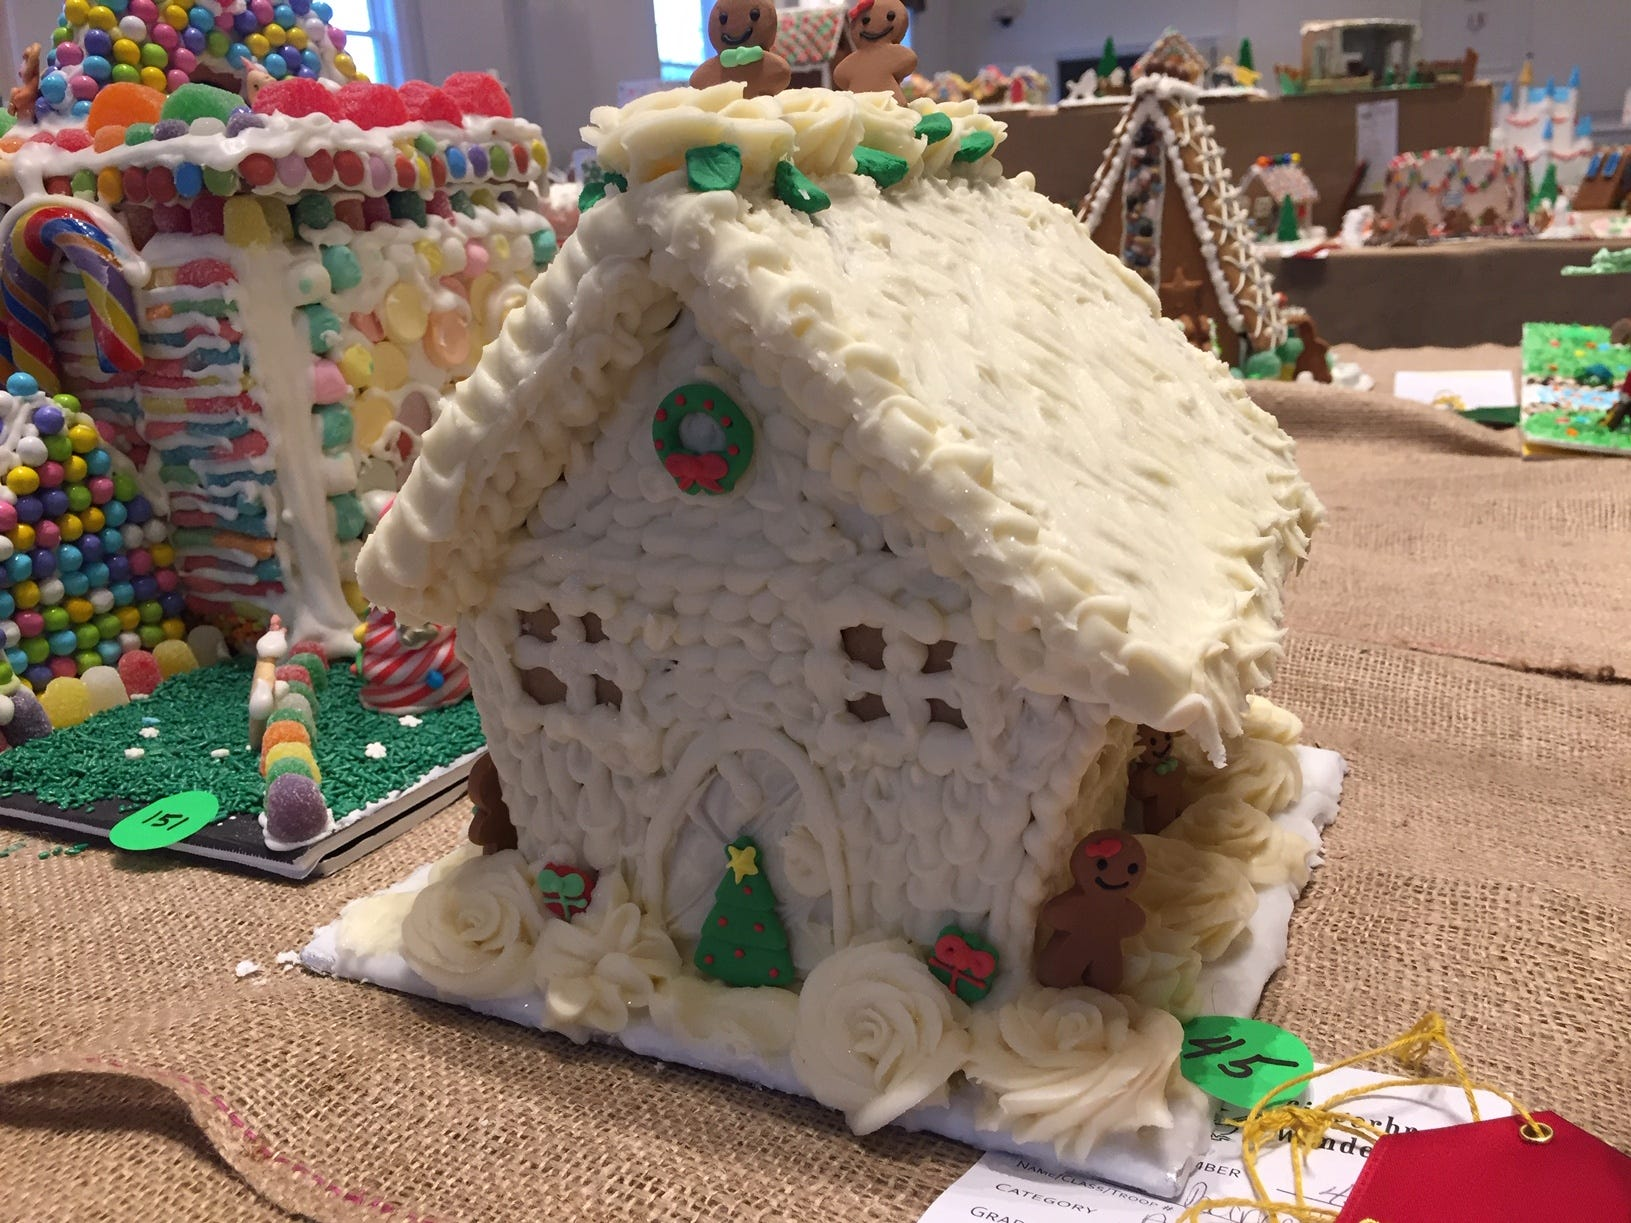 """Green Flower Home"" by Jaime Barrett of East Brunswick, at the Gingerbread Wonderland at the Frelinghuysen Arboretum. Adult category."